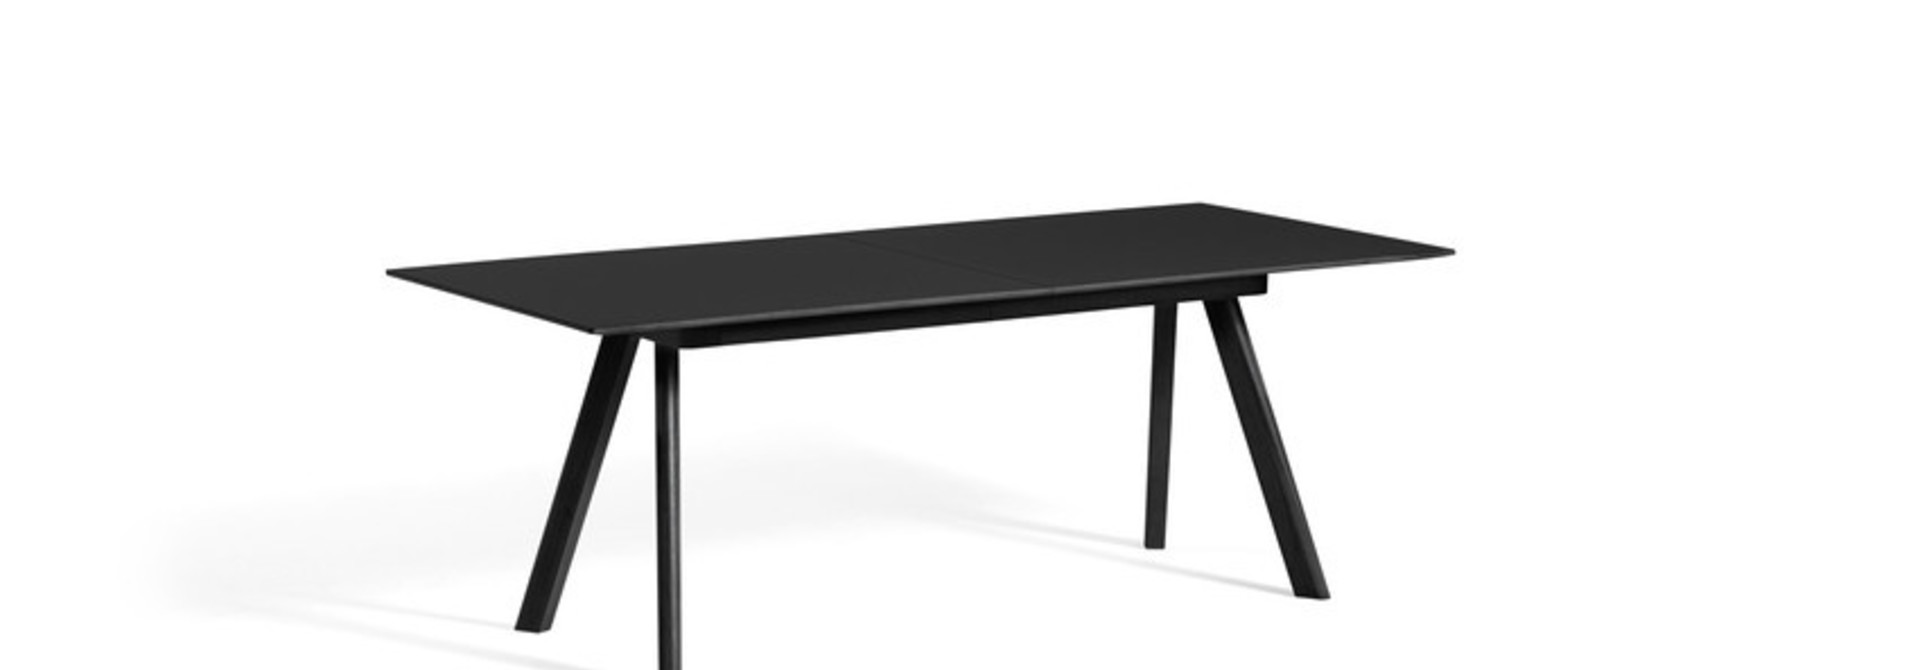 CPH 30 Extendable - Black stained solid oak